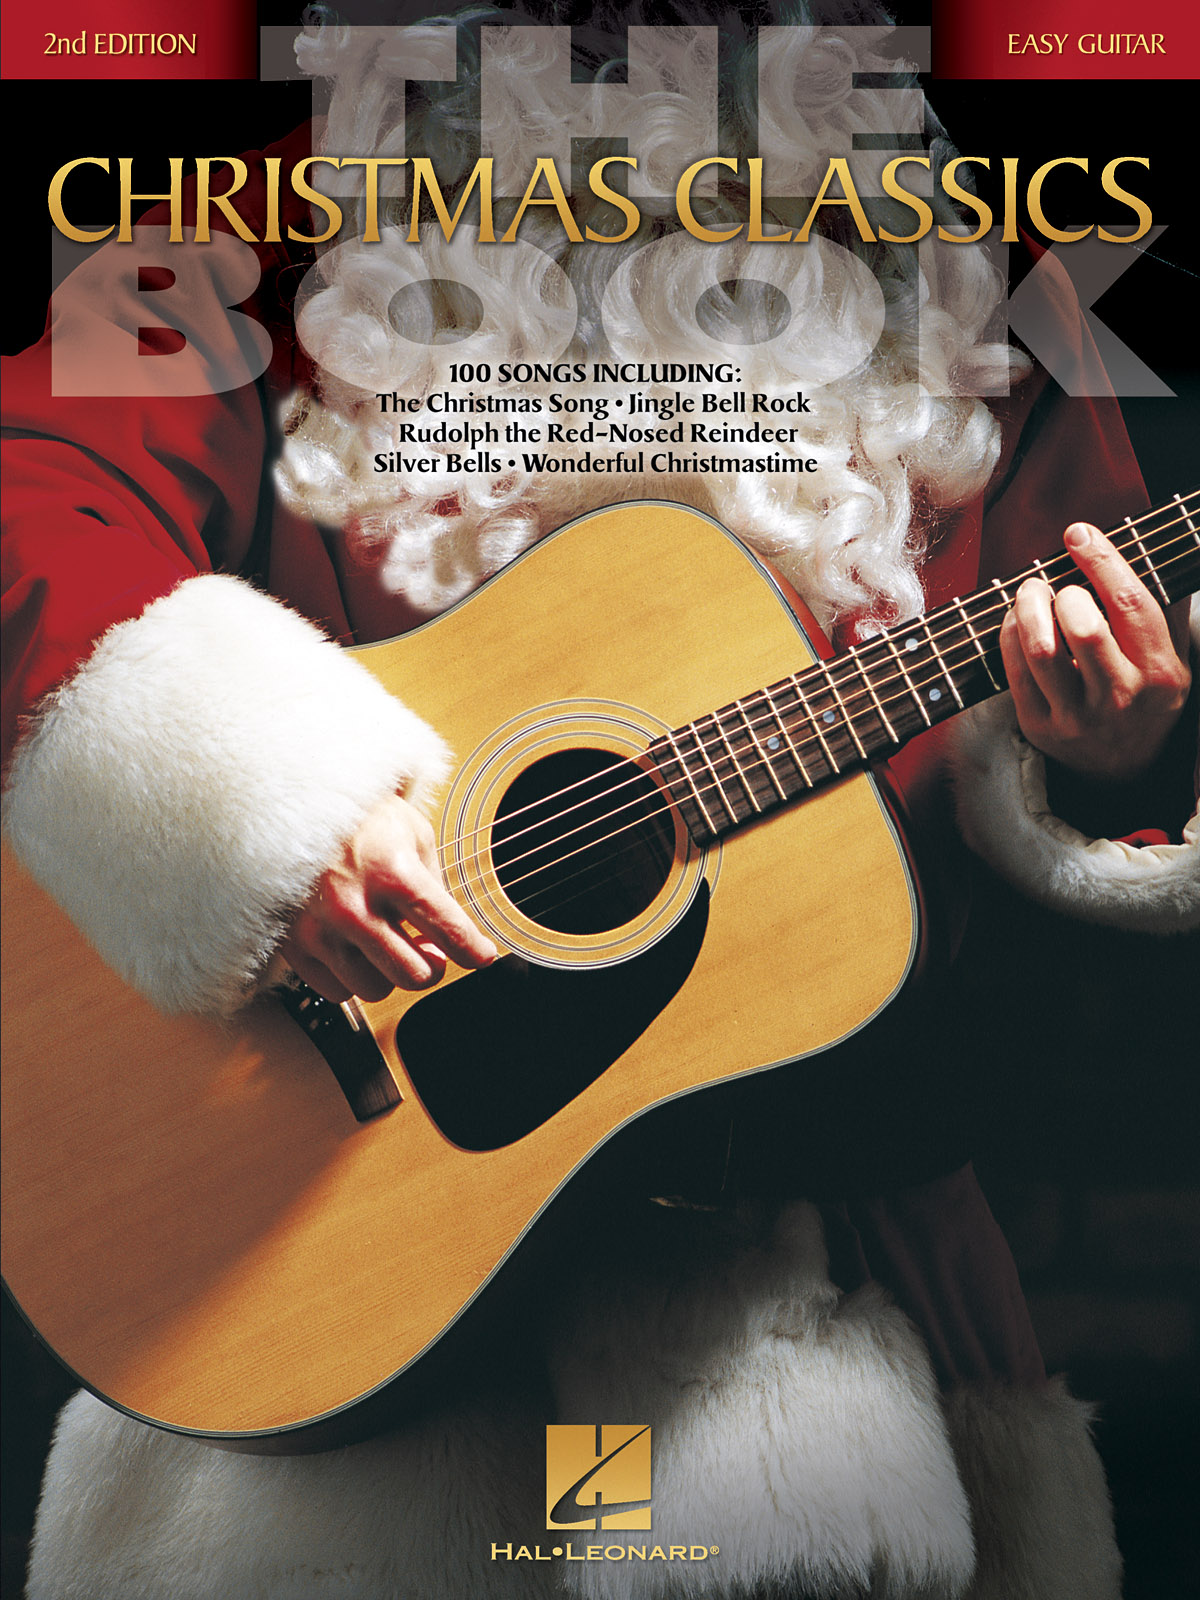 Christmas Guitar Music And Tab Sheet Music At Jw Pepper